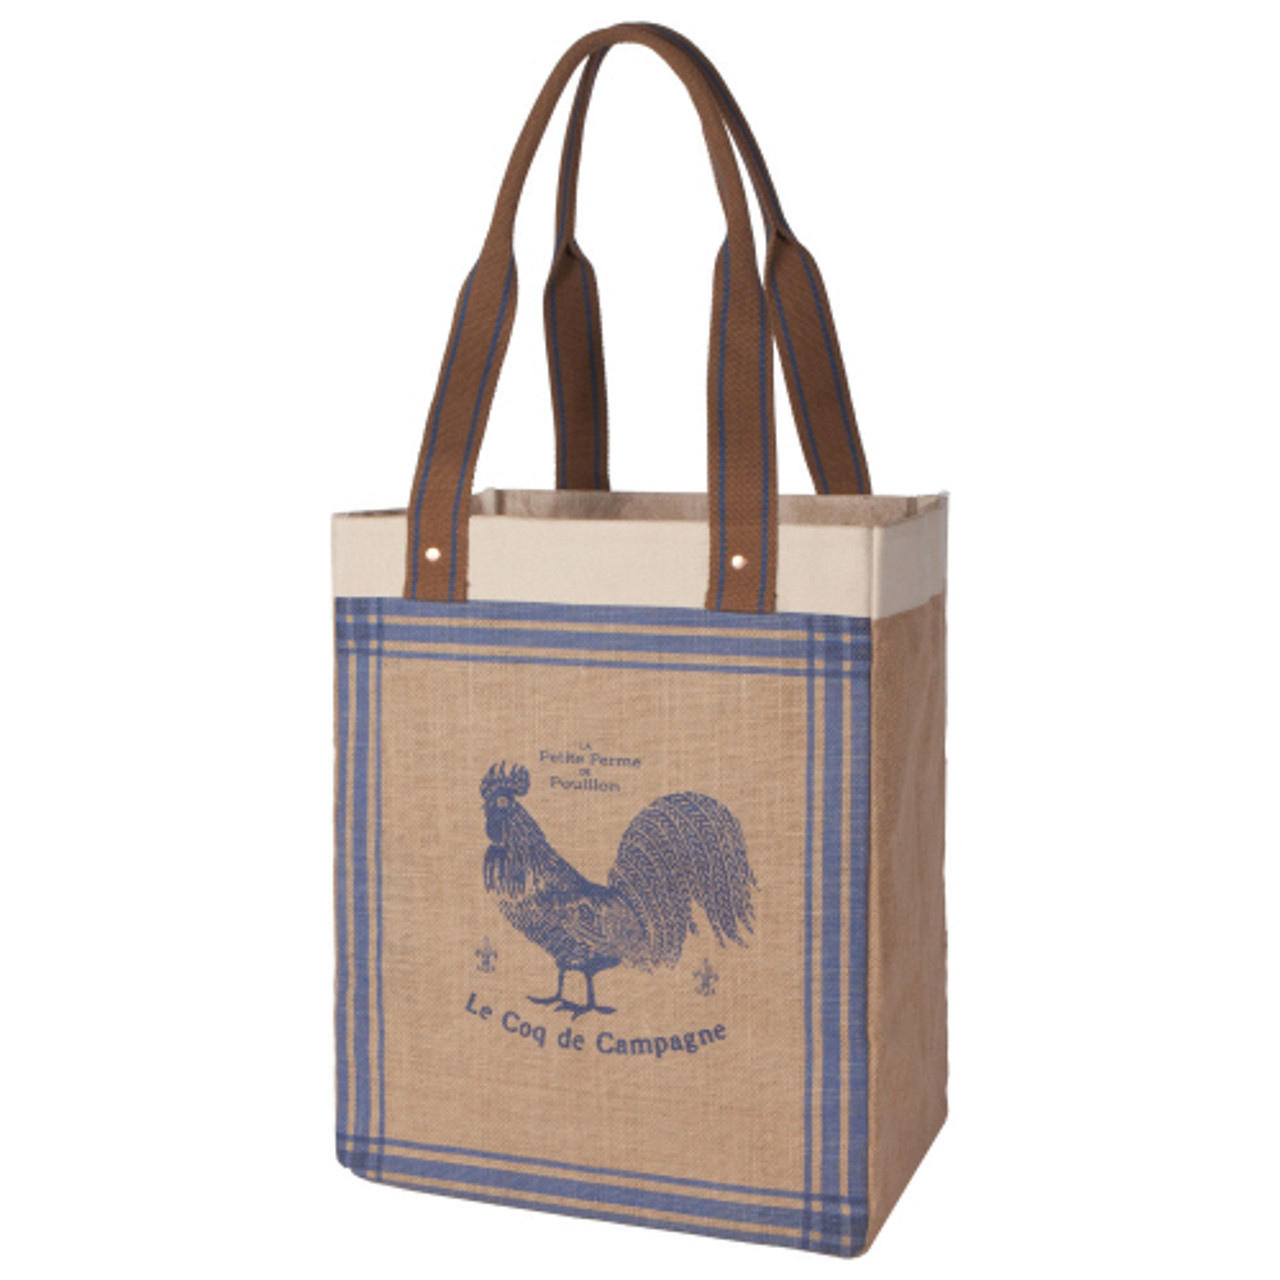 MARKET TOTE - ROOSTER FRANCAISE